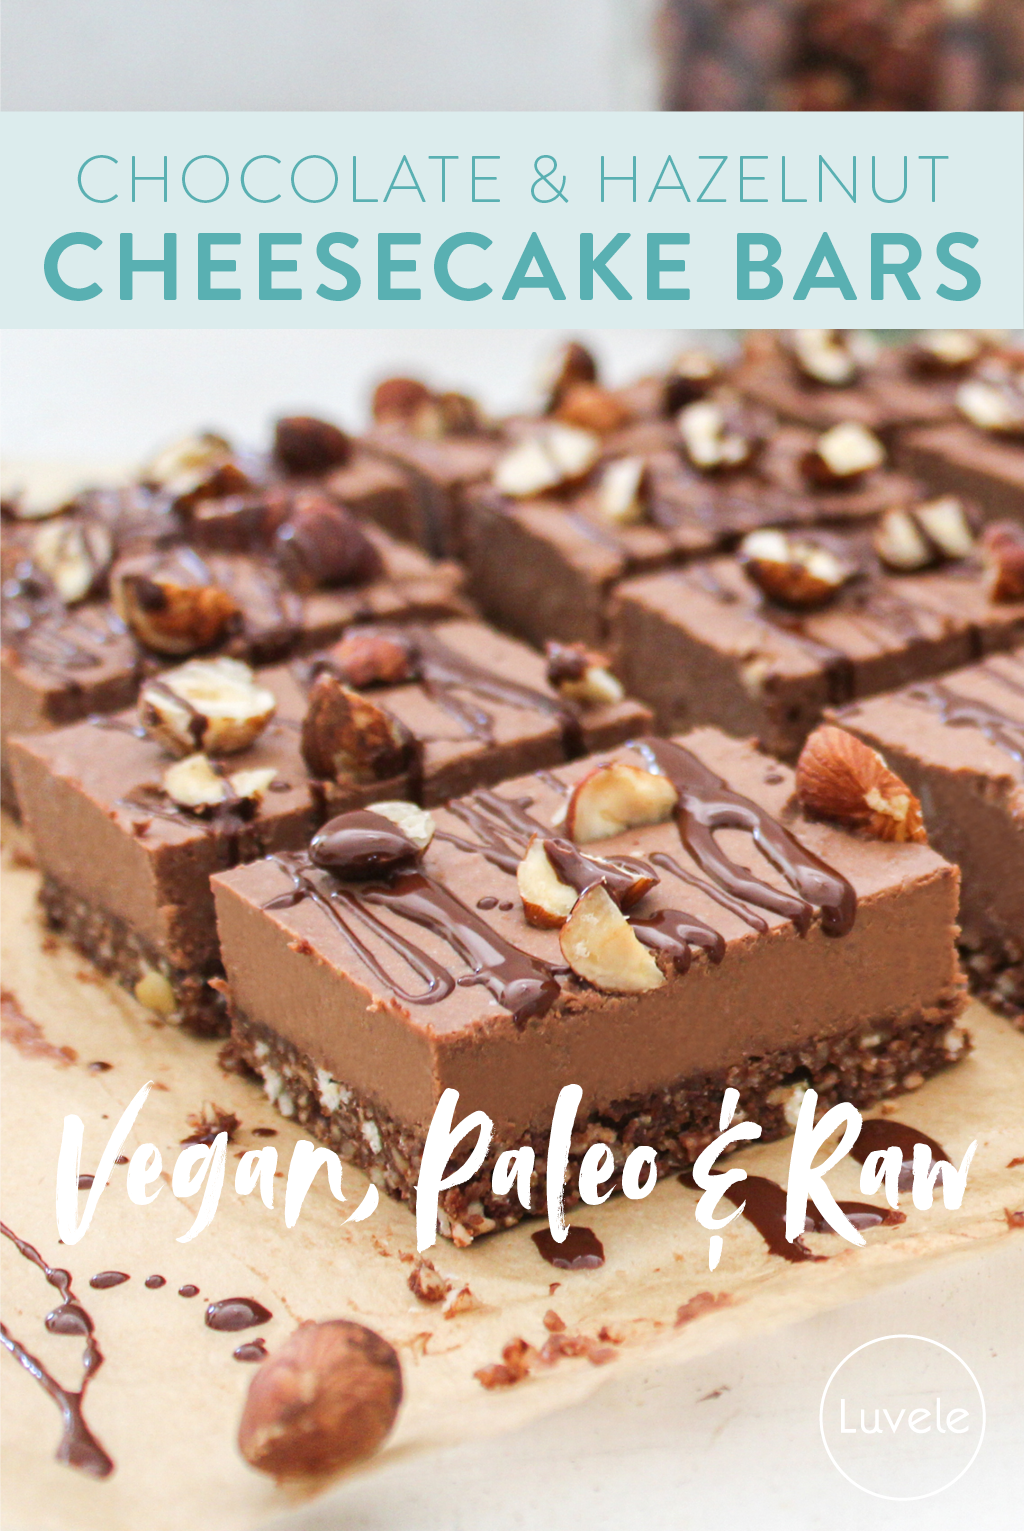 chocolate & hazelnut cheesecake bars